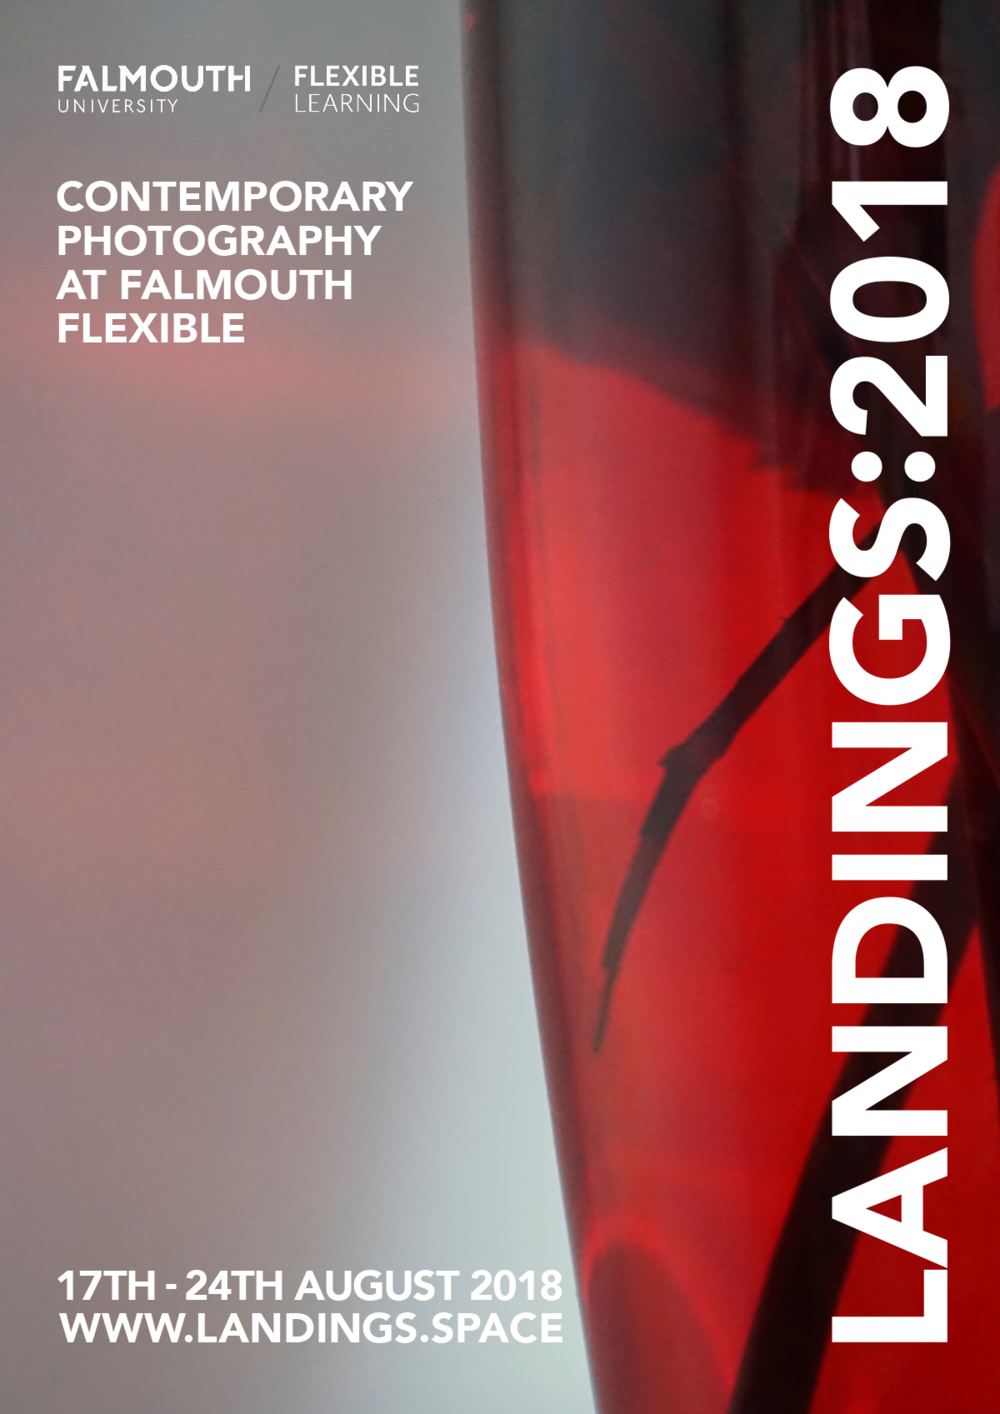 LANDINGS:2018 - 'Landings' is a collection of current work by students and staff of the MA Photography course at Falmouth University.